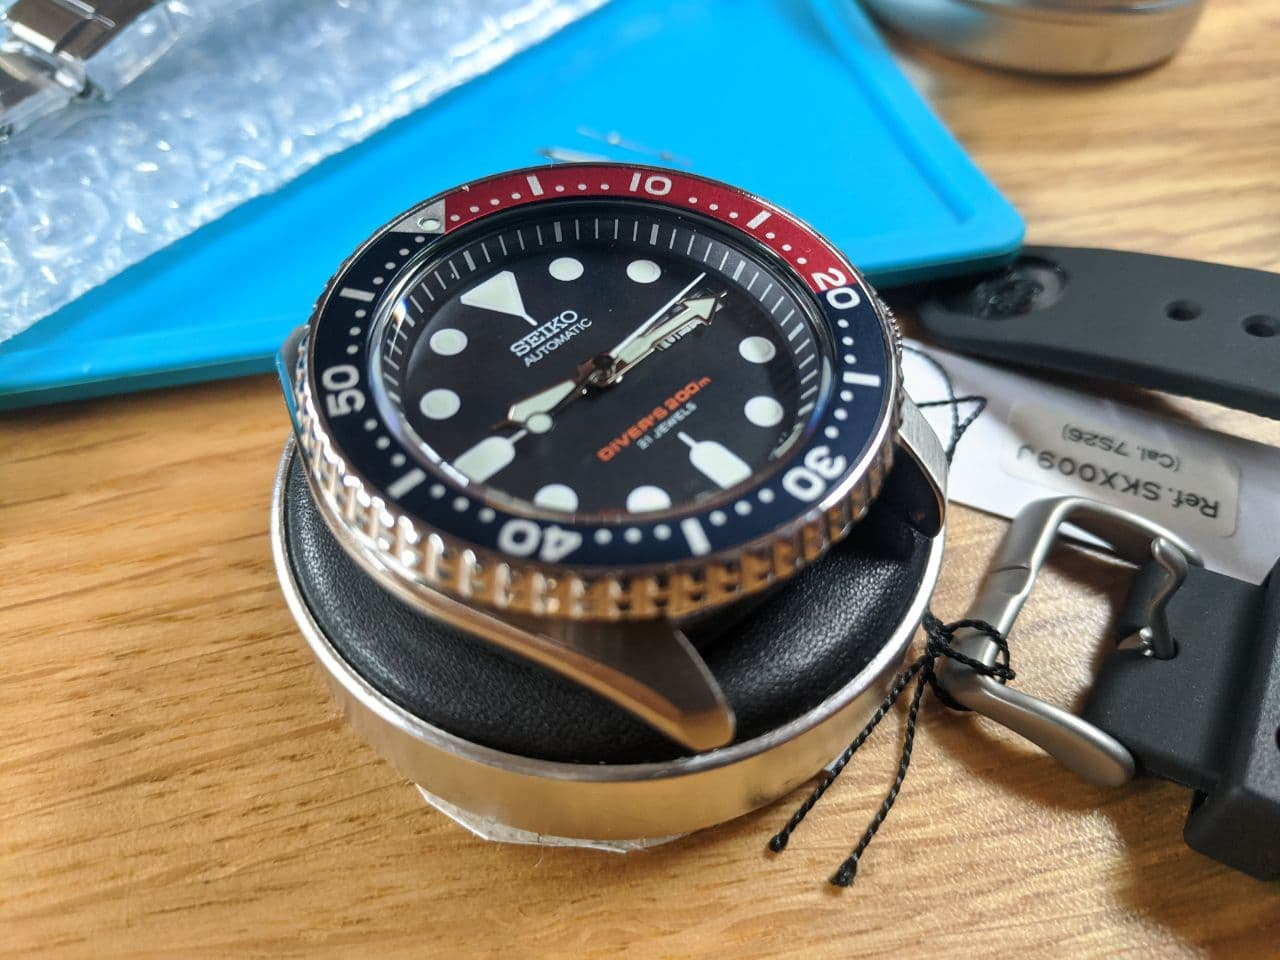 Seiko mods in the UK: Seiko SKX009J1 Base watch for Modification by Wellingtime in the UK.